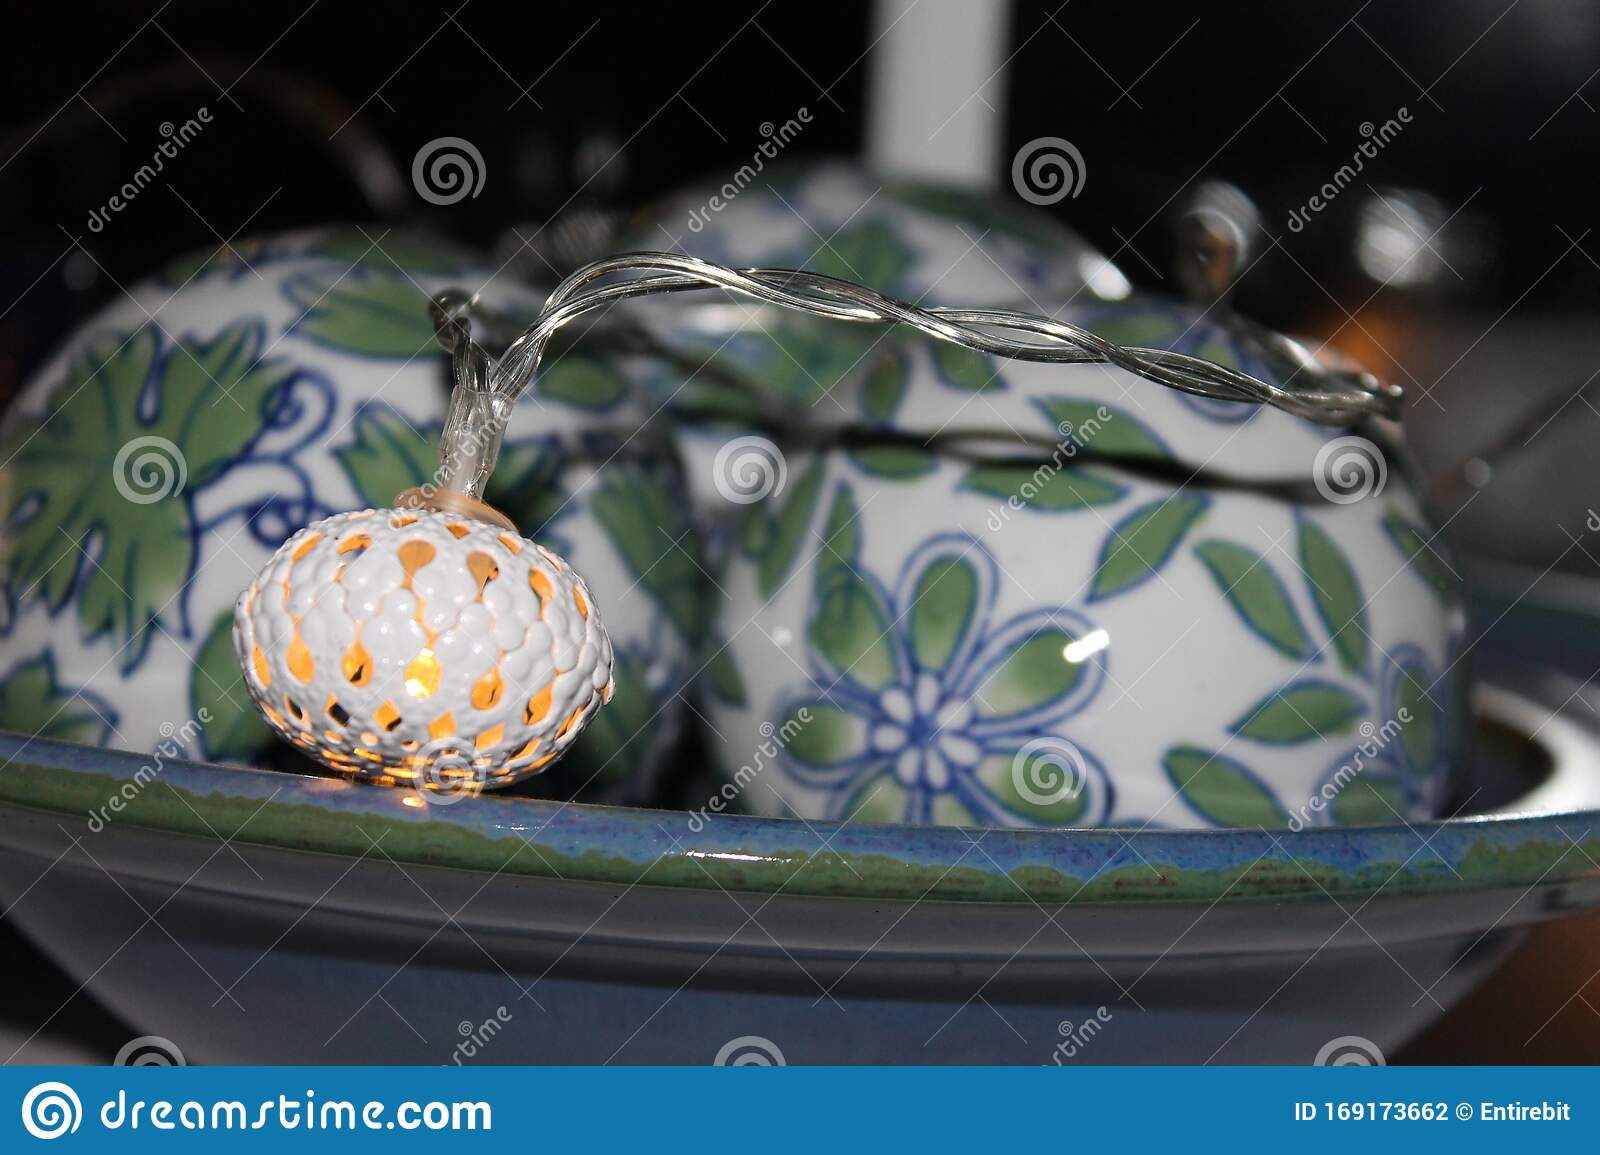 Three Ceramic Decorative Balls In A Bowl With A Fairy Light Stock Photo Image Of Beautiful Bowl 169173662